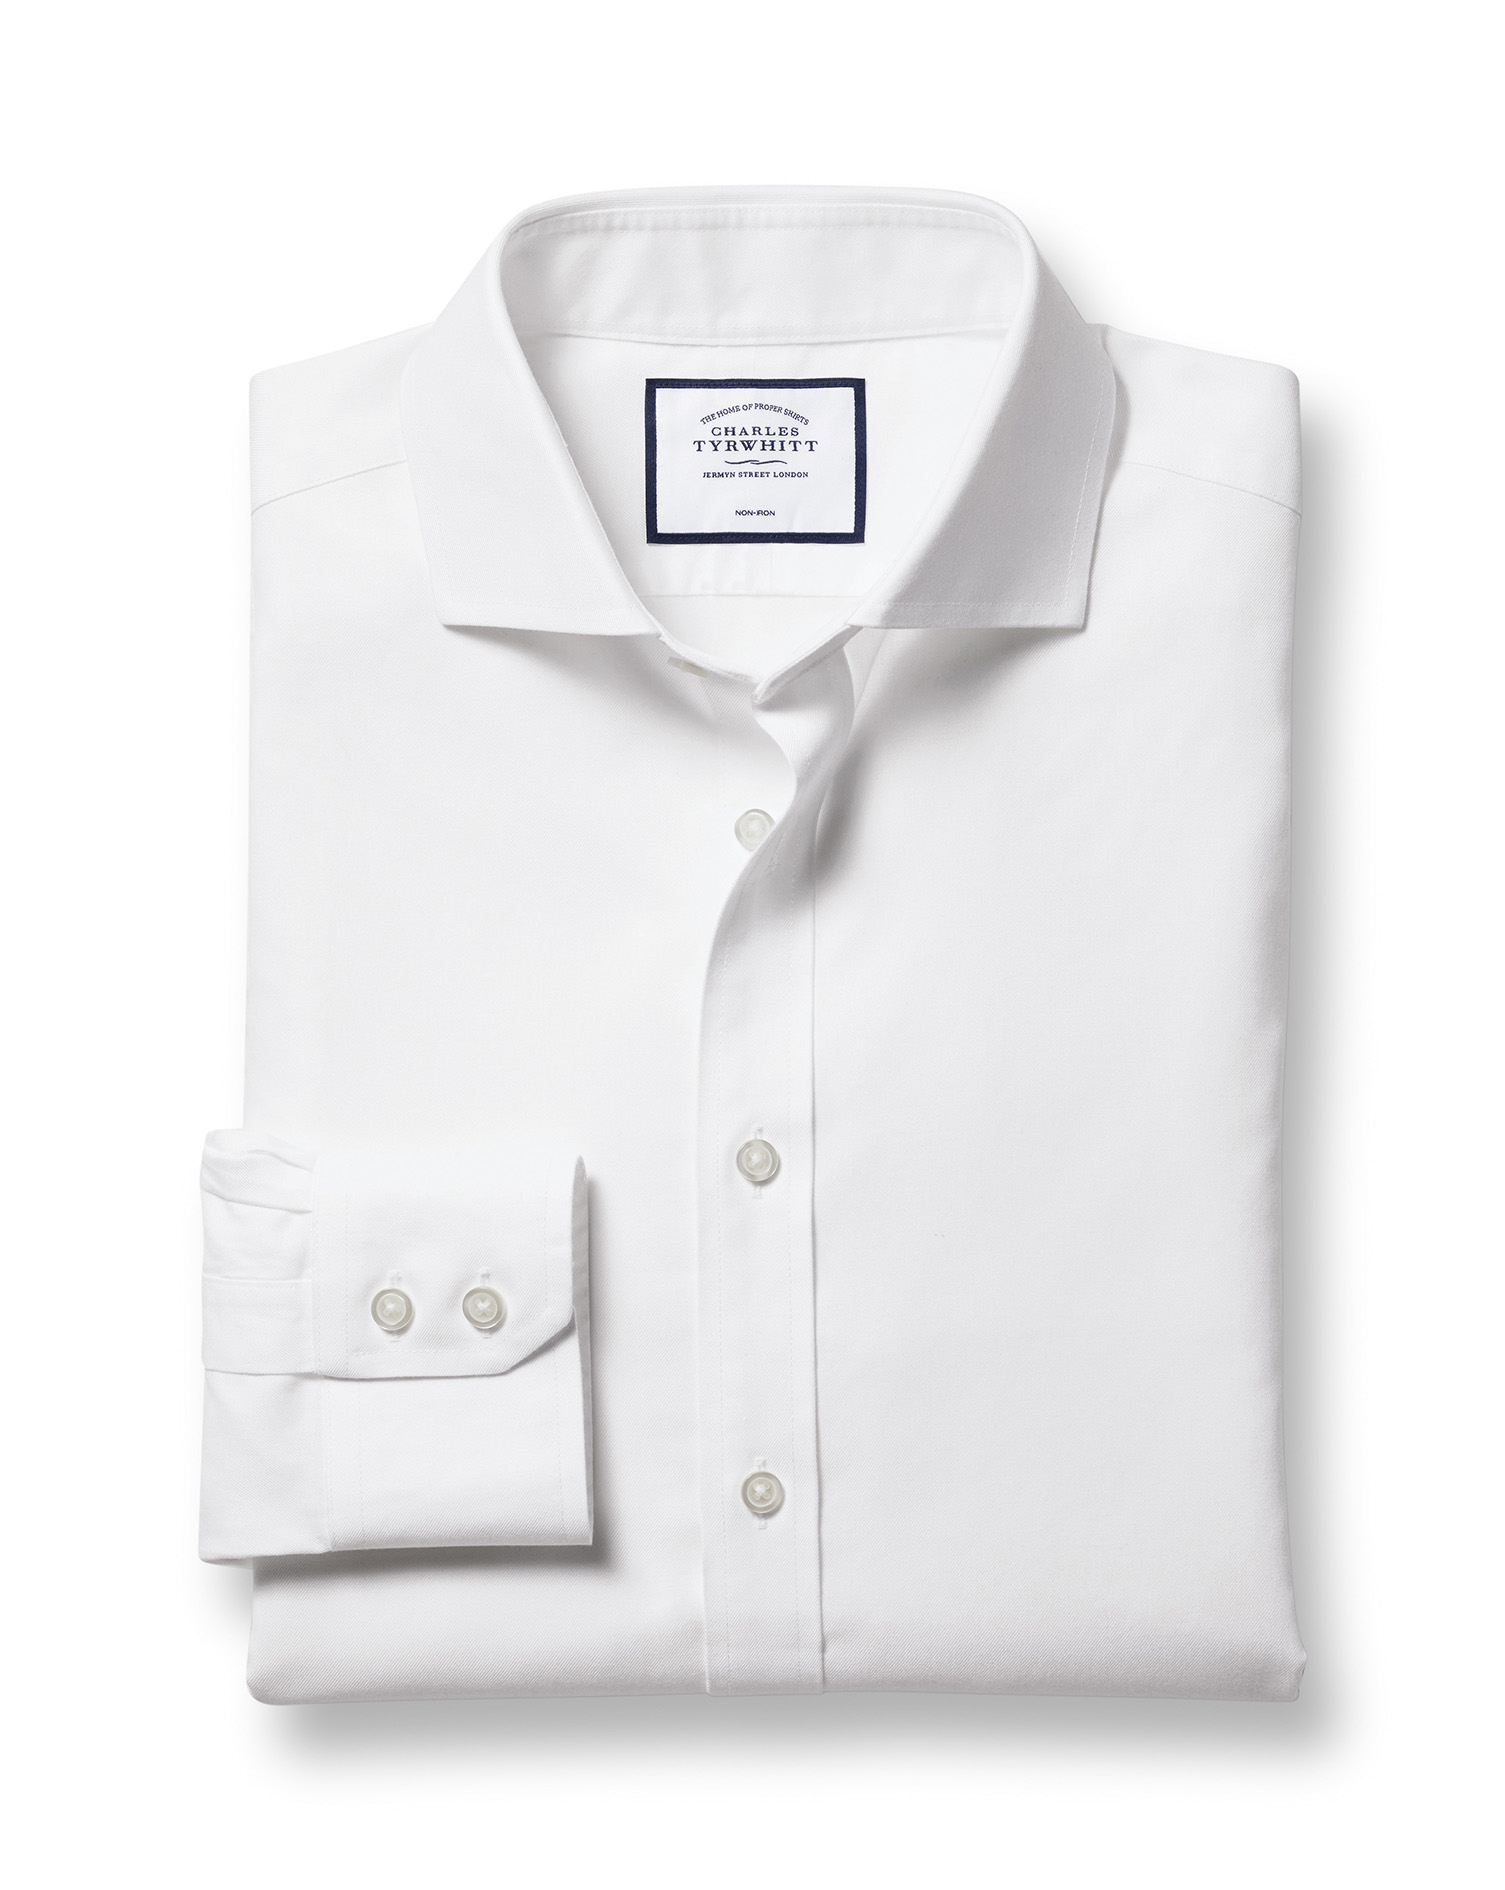 Cotton Extra Slim Fit White Non-Iron Twill Cutaway Shirt